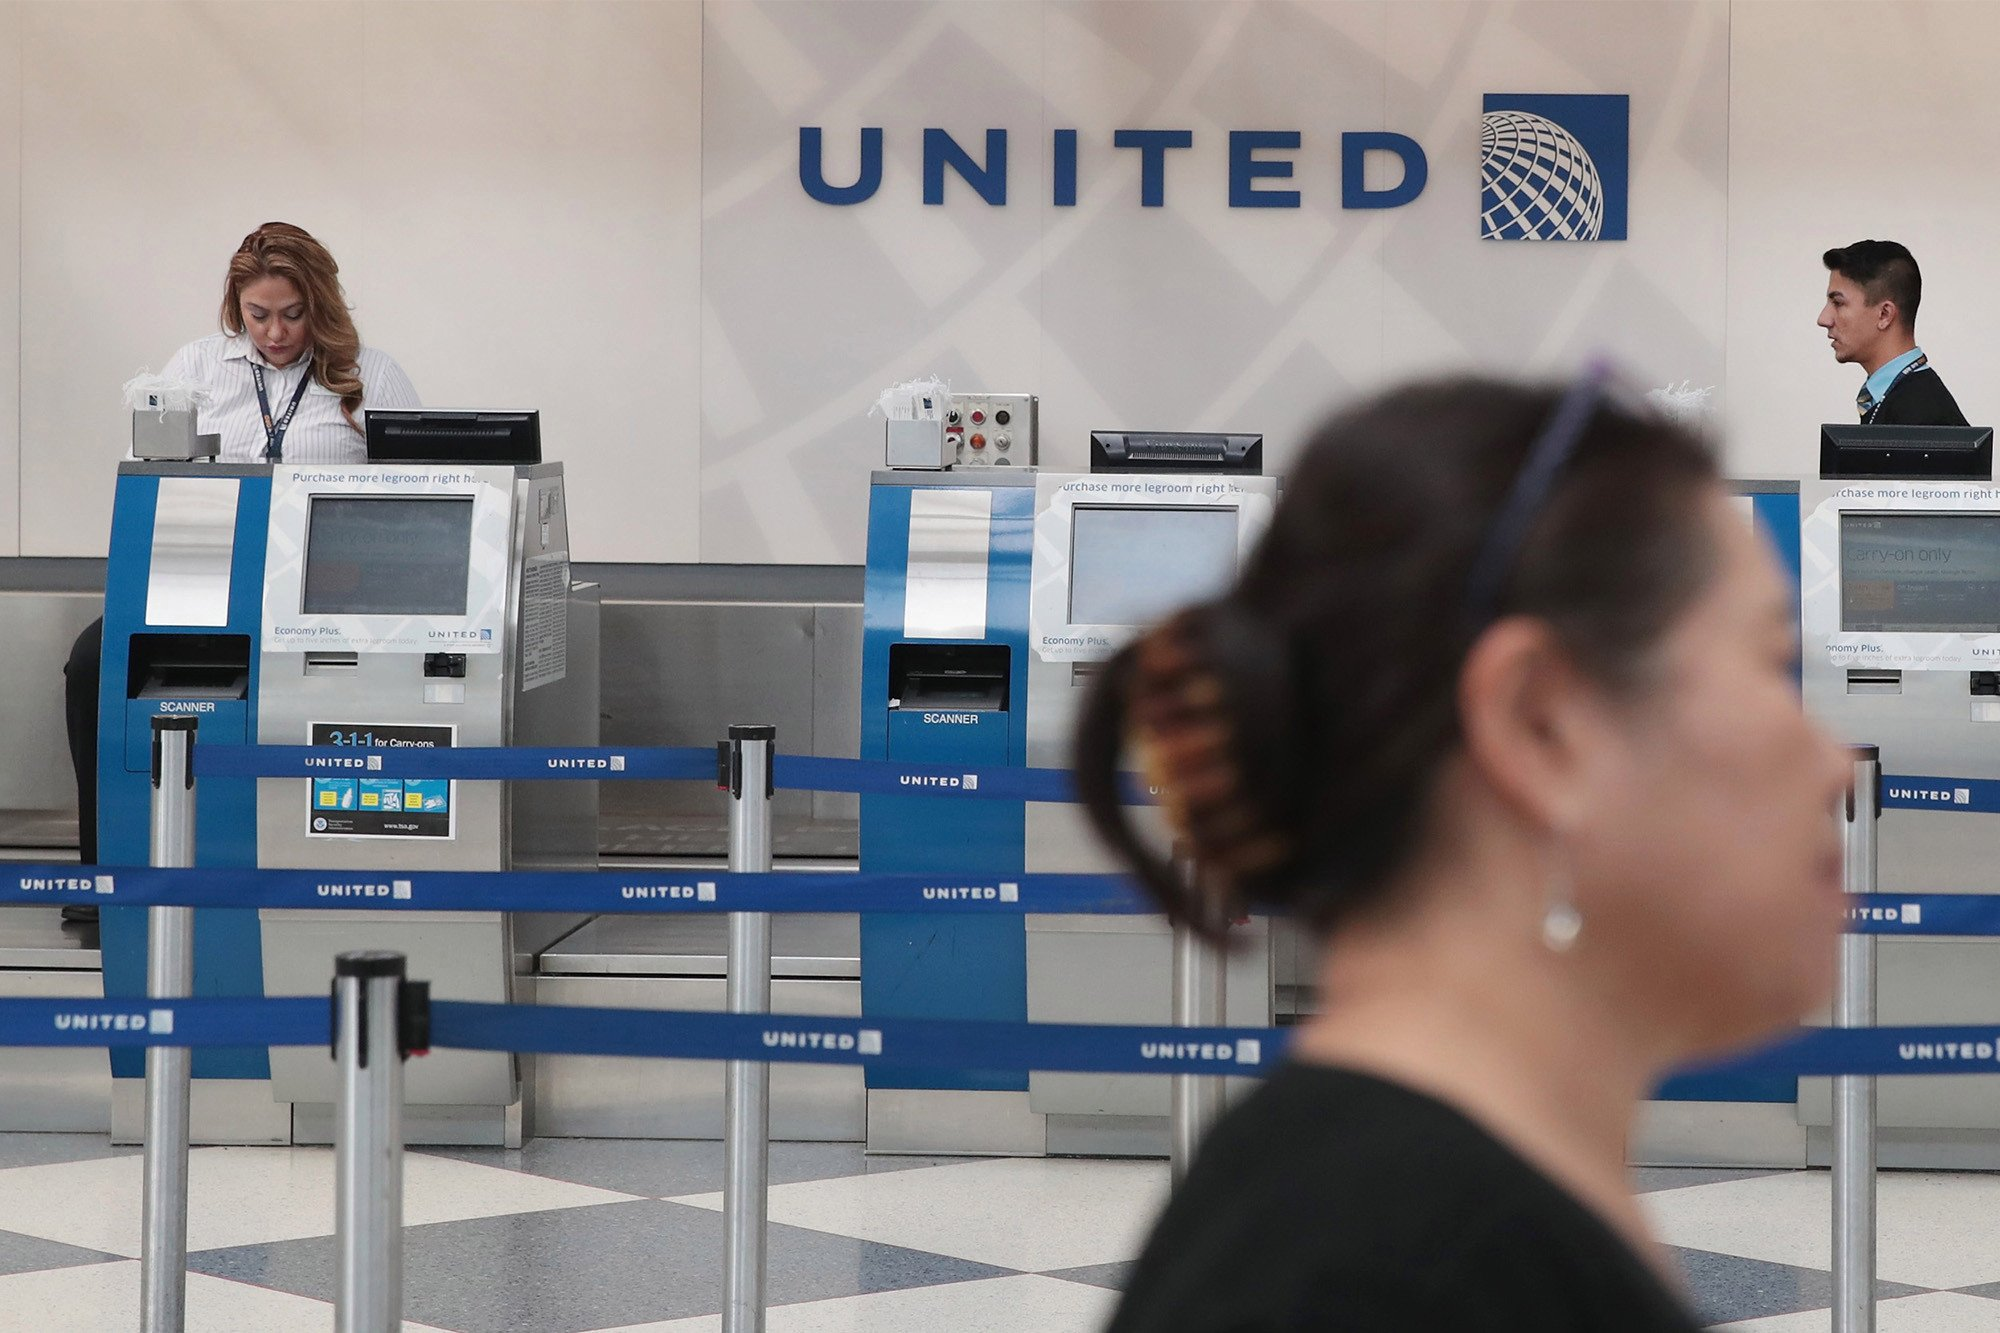 United scraps 'prize lottery' in lieu of bonuses after employee backlash